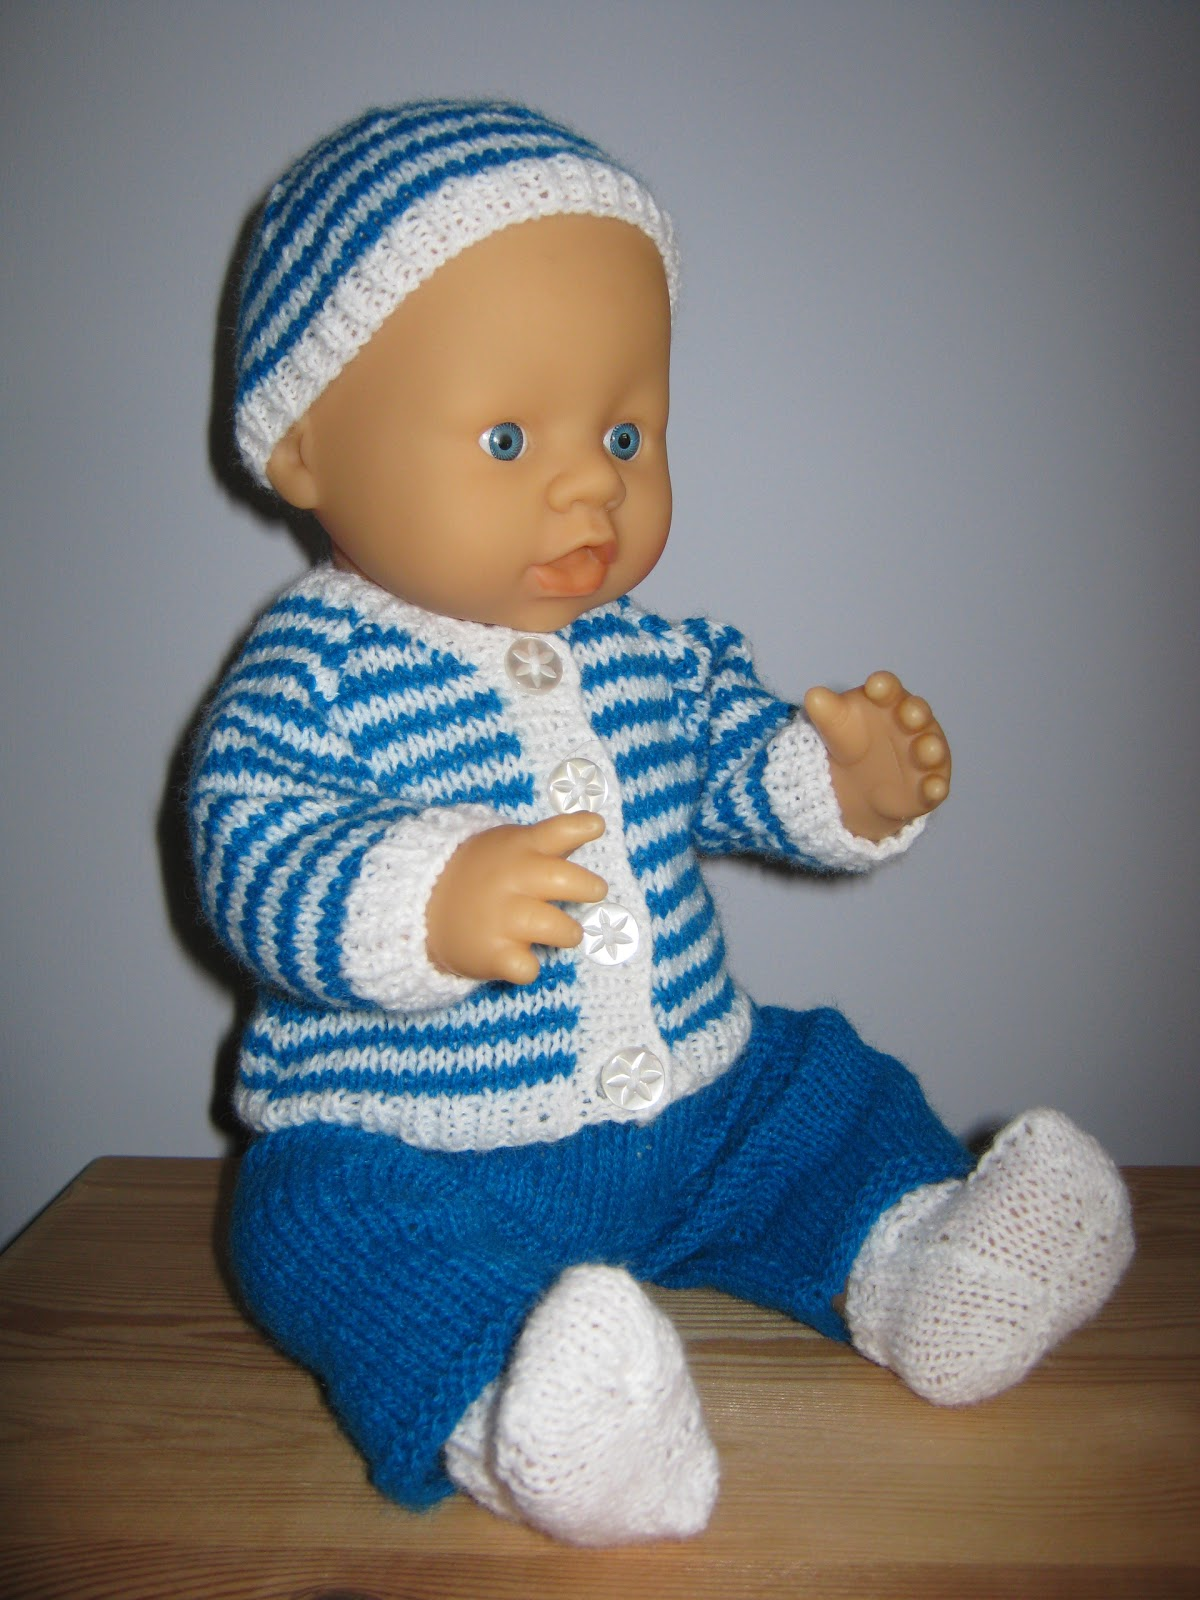 Knitting Pattern 13 Inch Doll : Sixties Spirit: Outfits for 16 inch baby doll - part 2